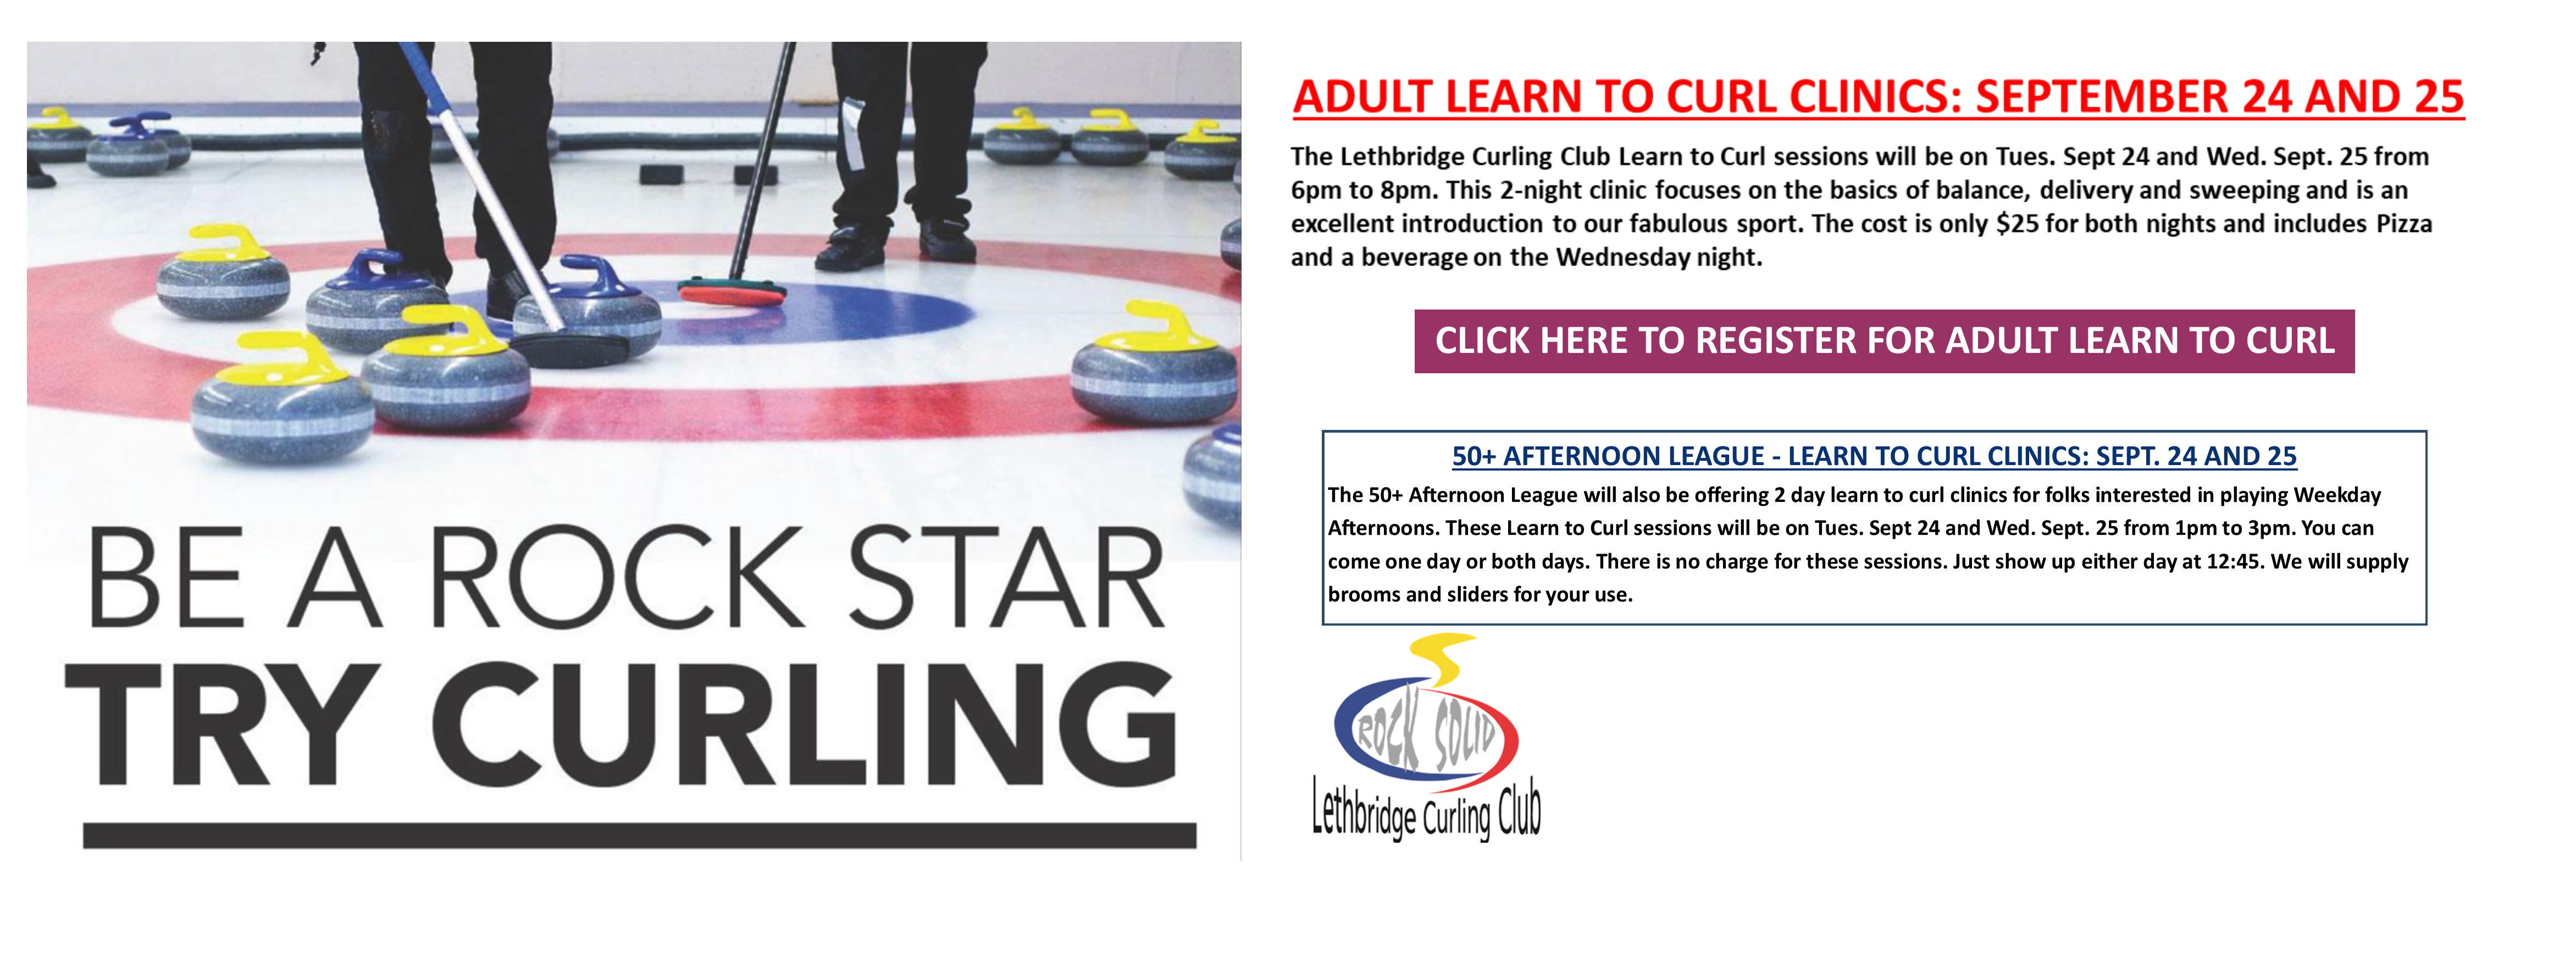 <div id=slideshow_title>Learn to Curl Clinics</div> <br><div style='text-align: left; font-size: 18px;'>Bring Your Friends! </div>